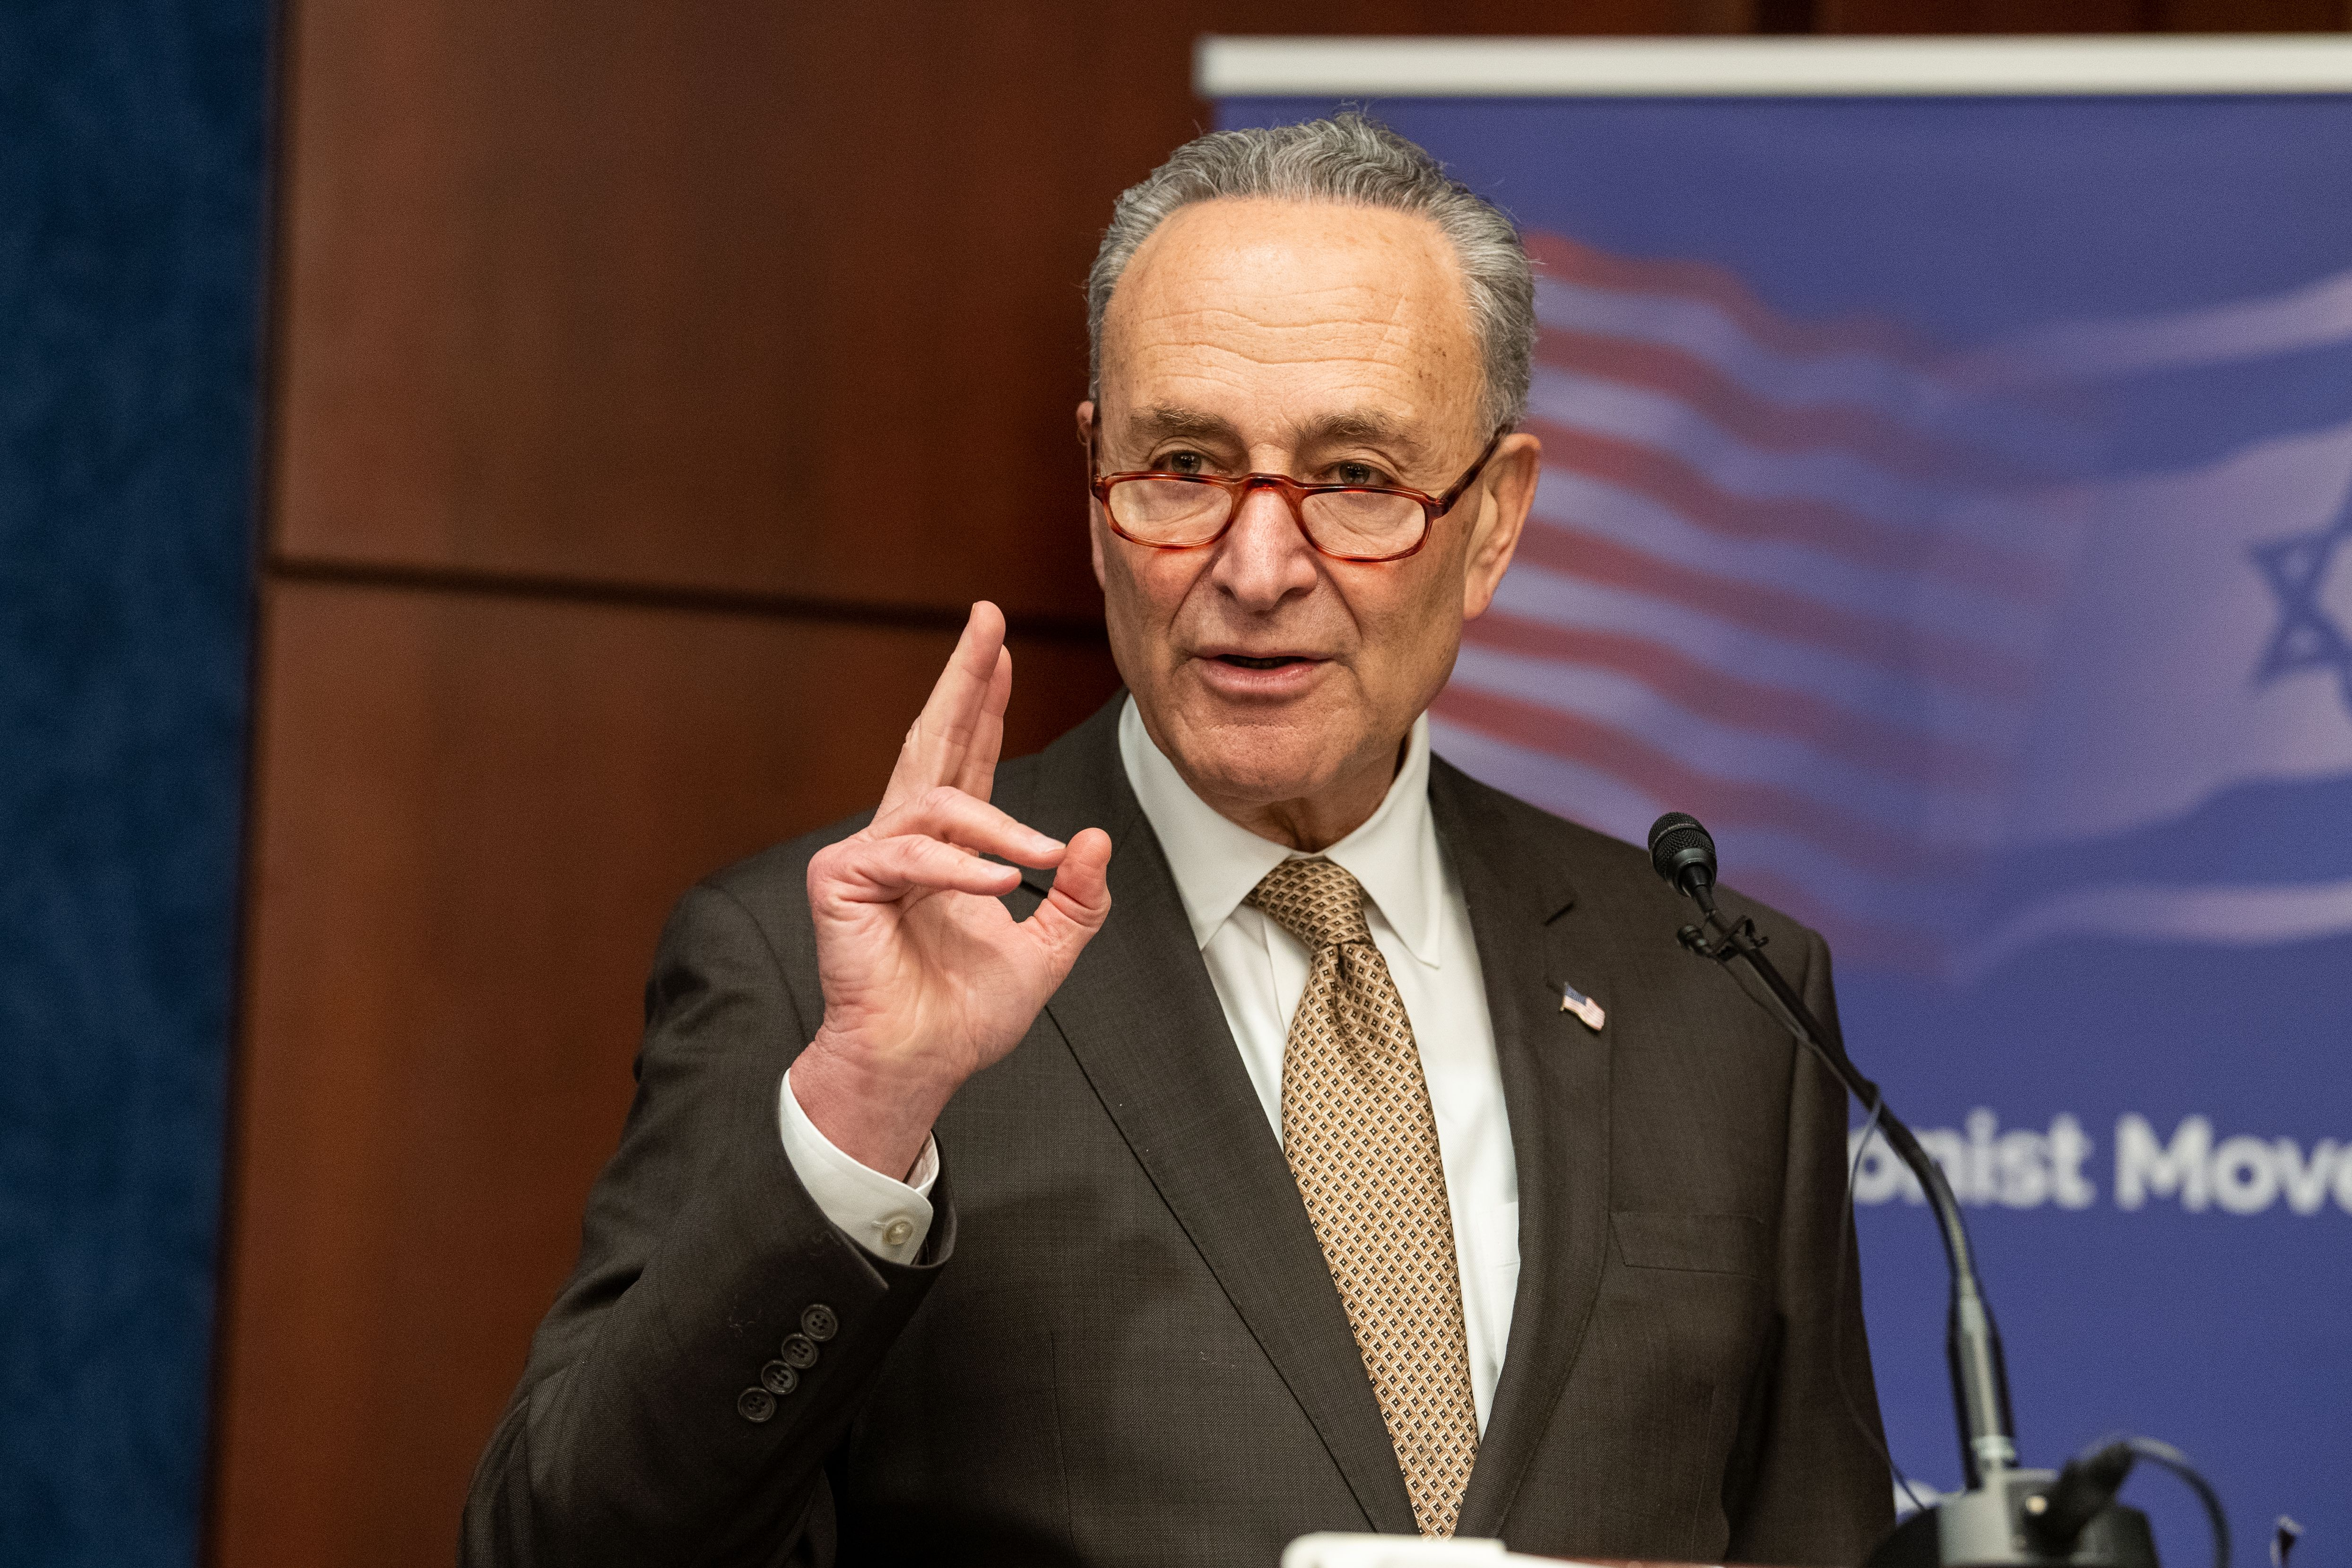 U.S. Senator Chuck Schumer at the American Zionist Movement Washington Forum in Washington, D.C., on Dec. 12, 2018.